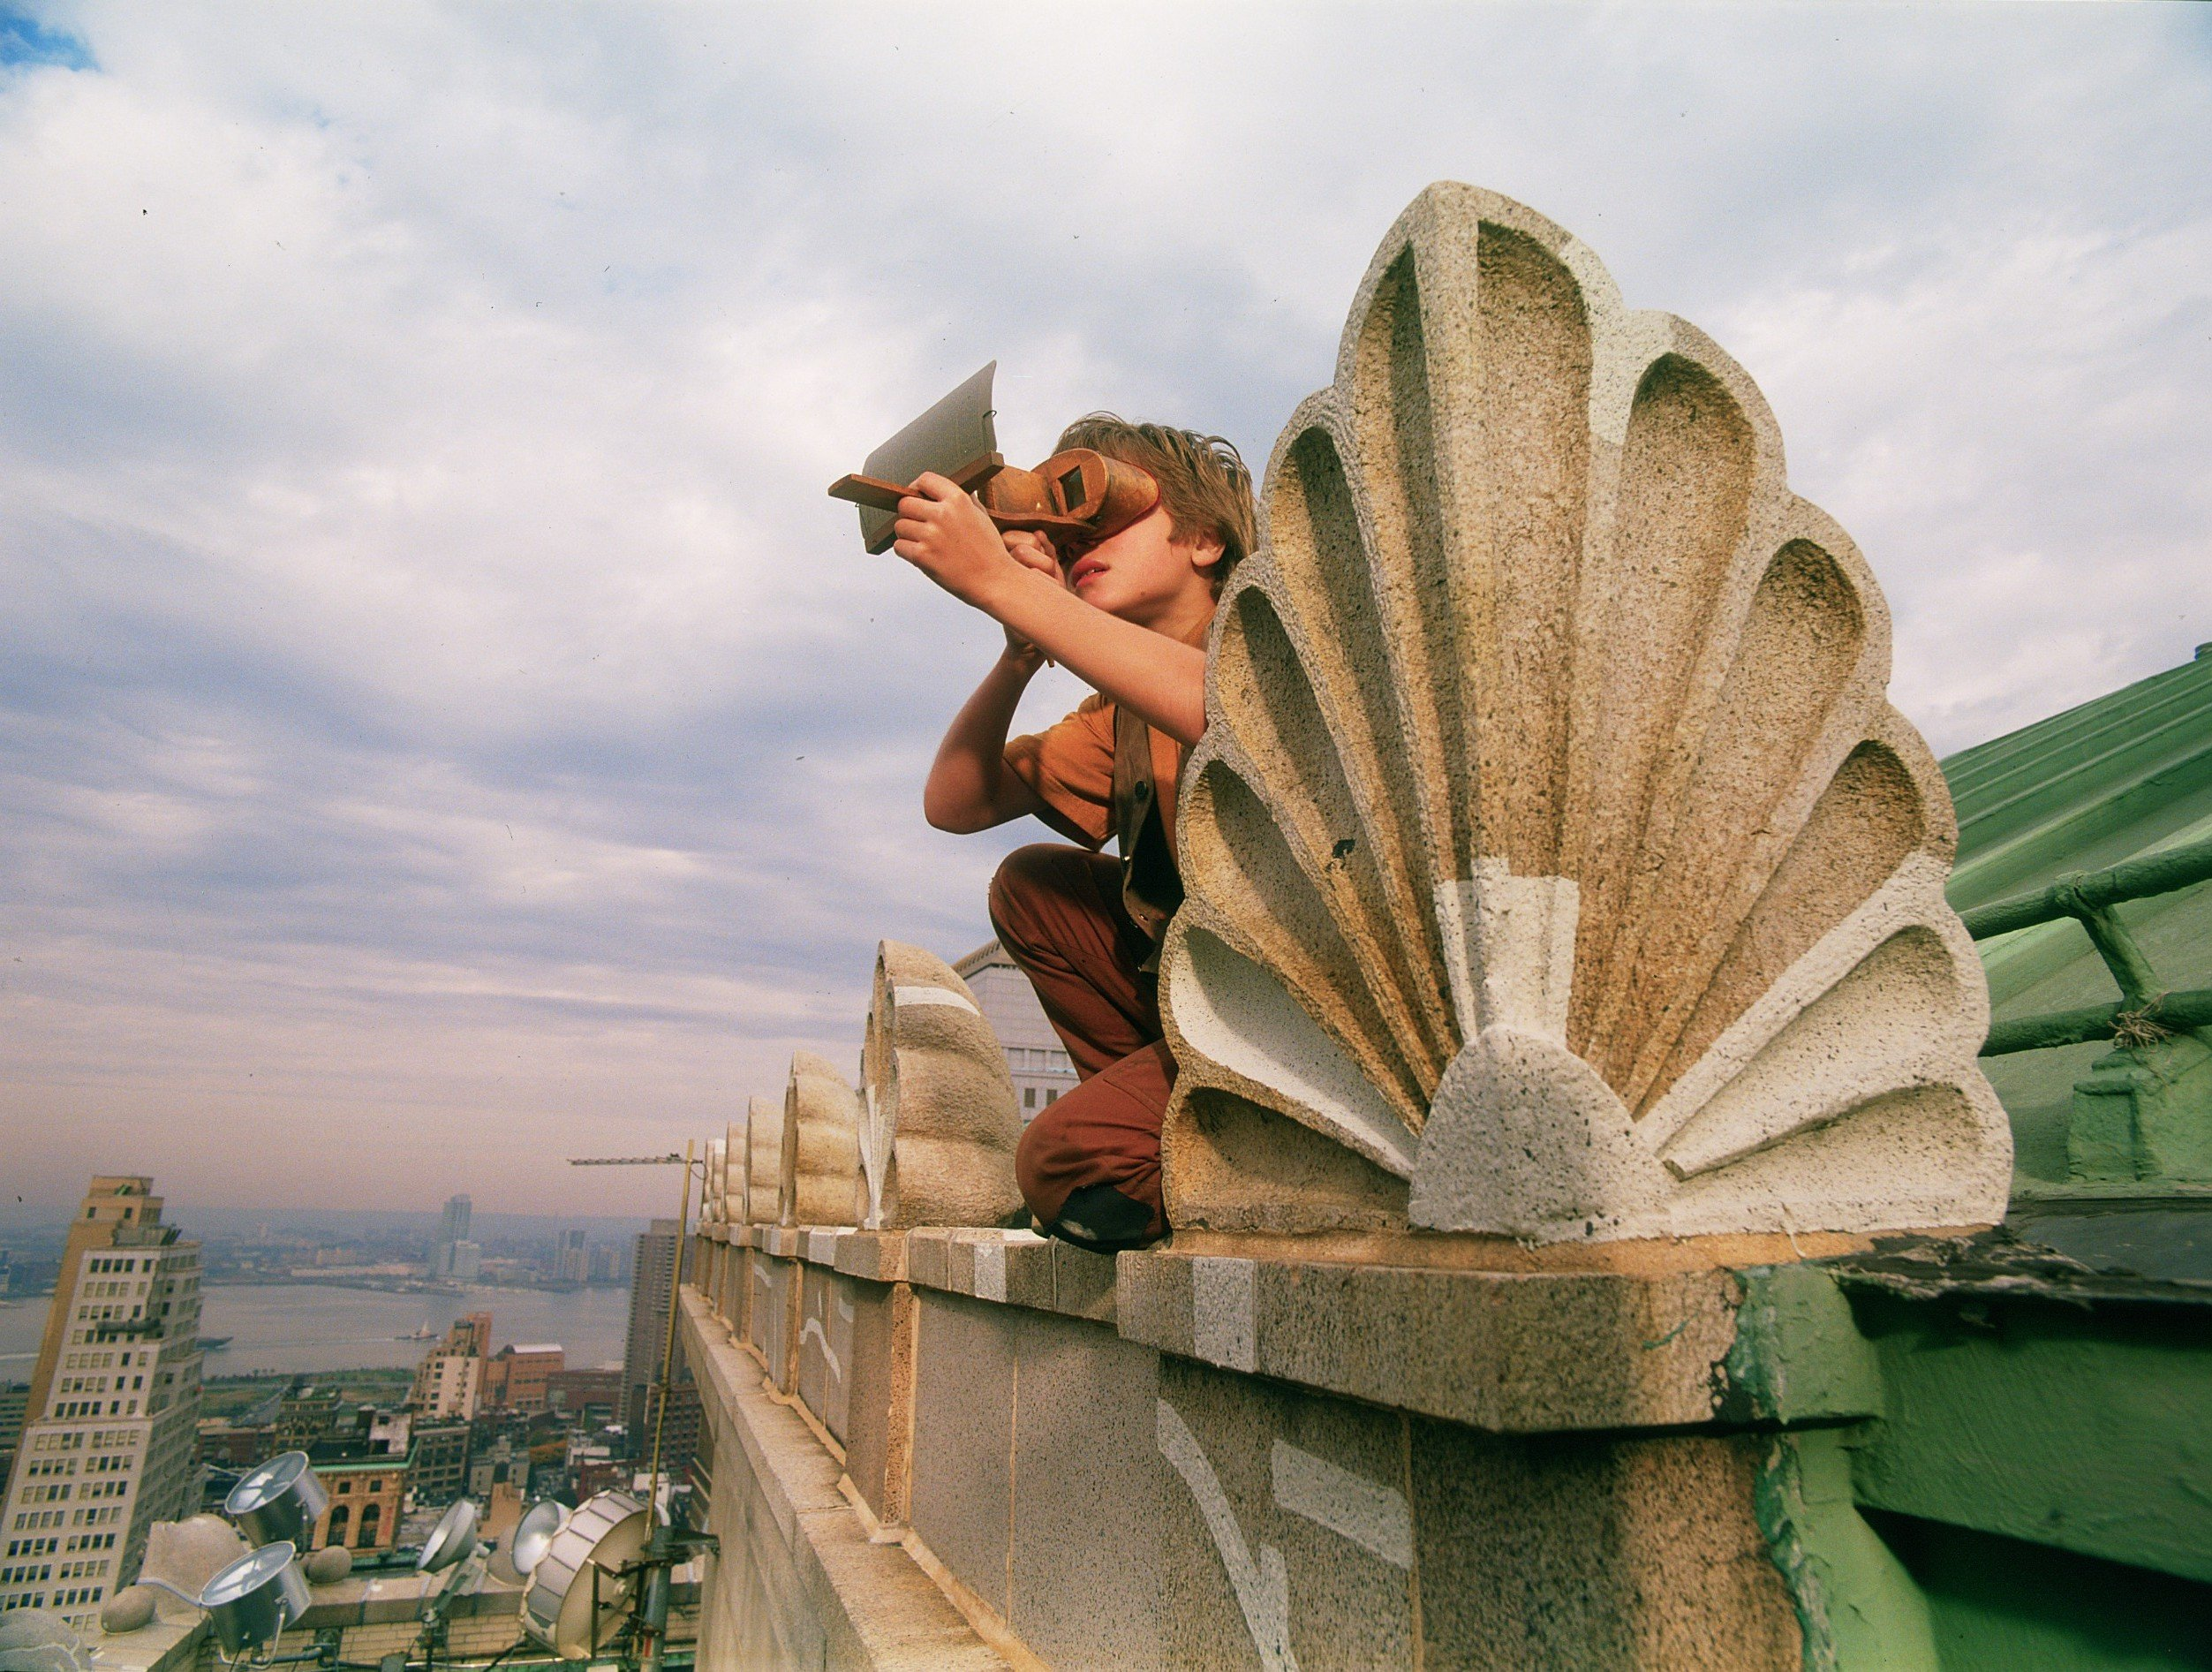 A boy looking through a 3D apparatus on a roof in front of the New York City skyline.